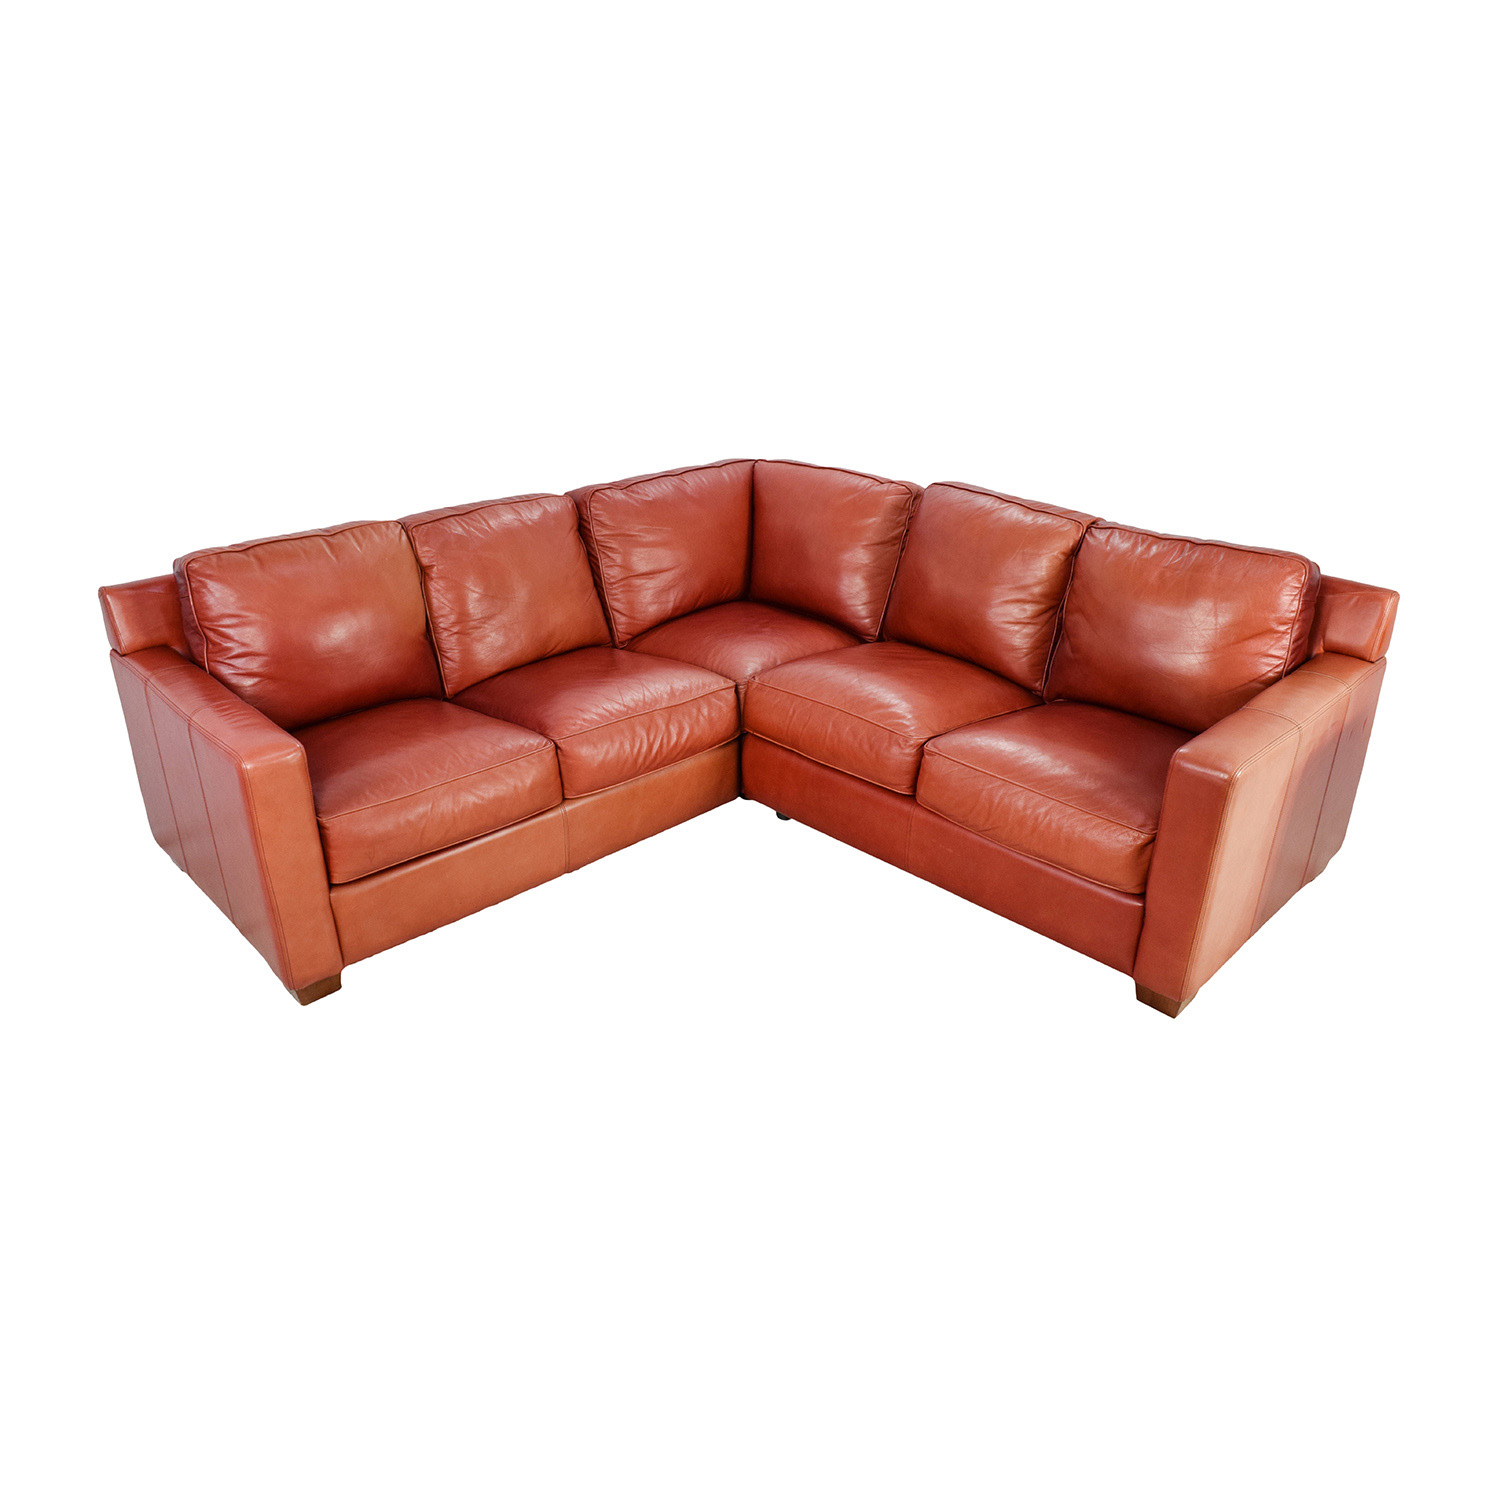 Thomasville Red Leather Sectional / Sectionals